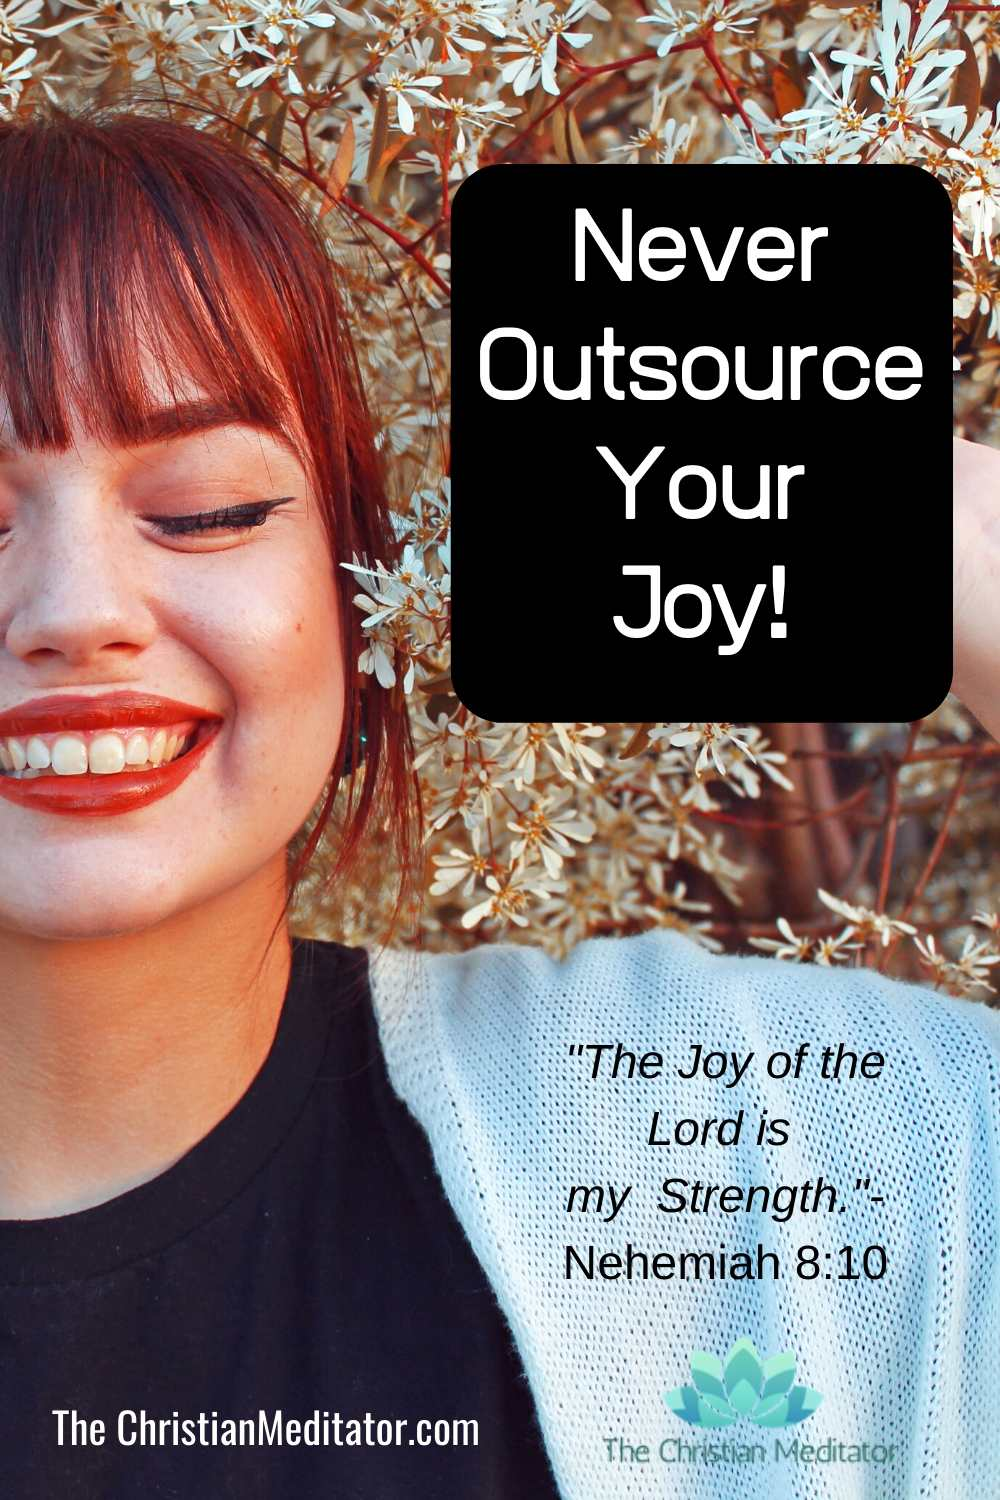 Stop outsourcing your joy